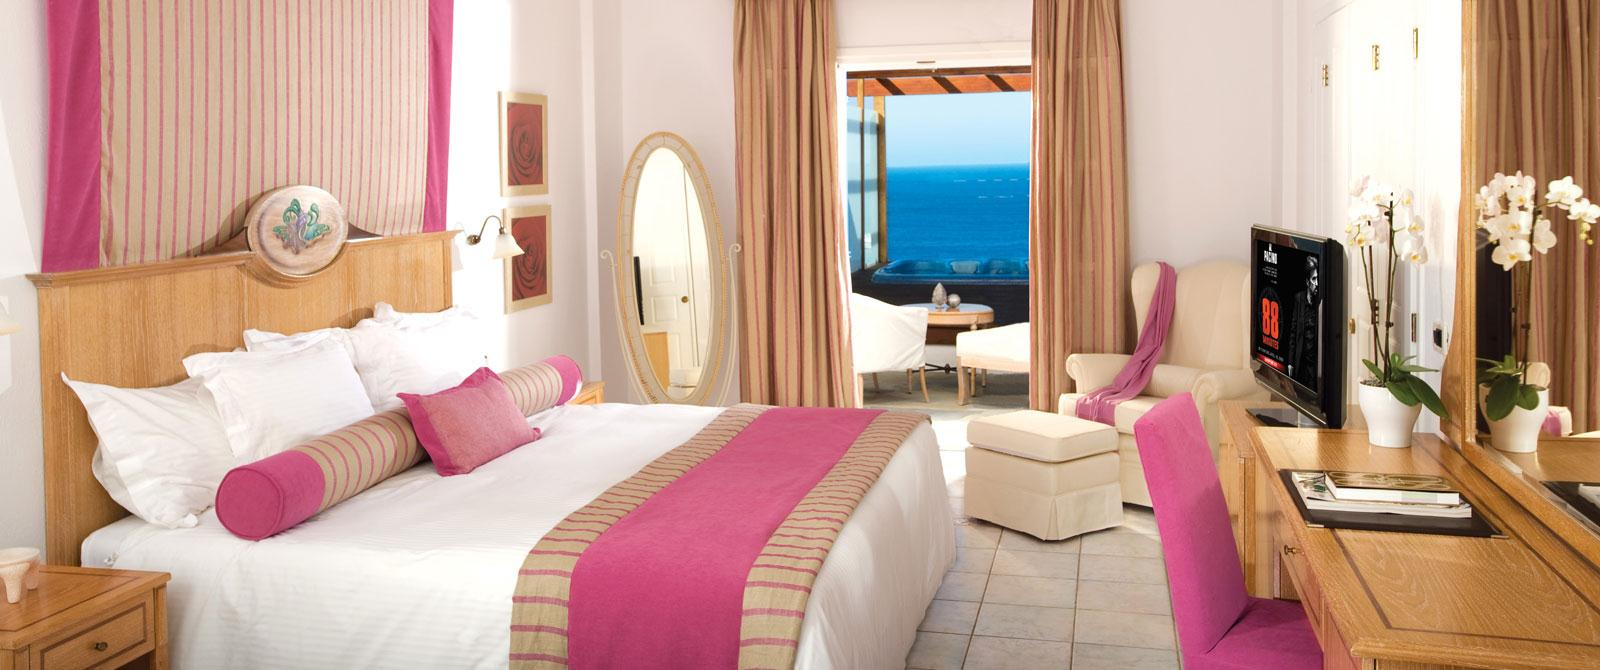 Royal Myconian-Deluxe Double Room with Outdoor Jacuzzi